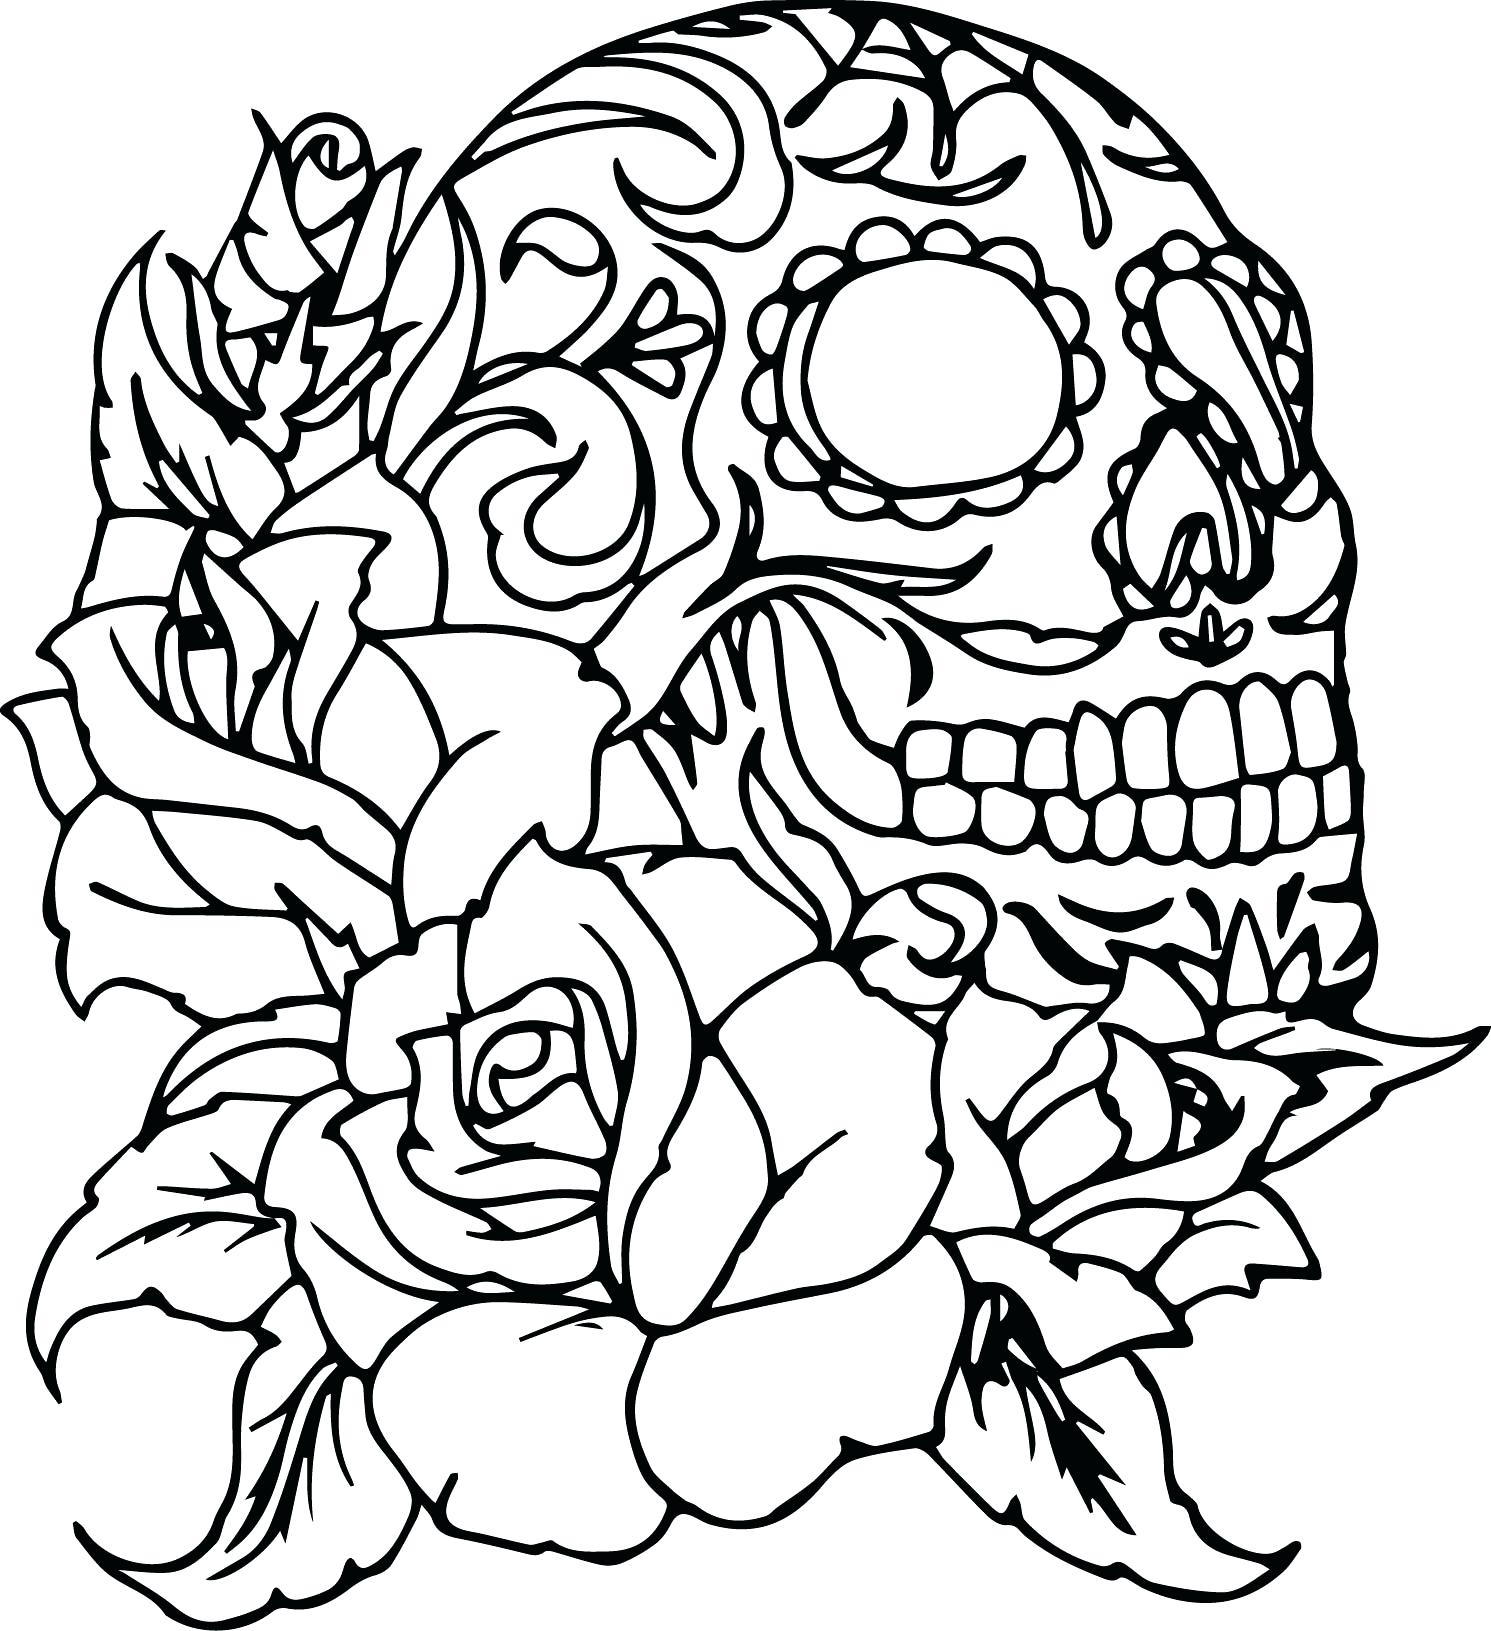 1491x1631 Coloring Coloring Pages Skull Day Of The Dead Skulls And Roses